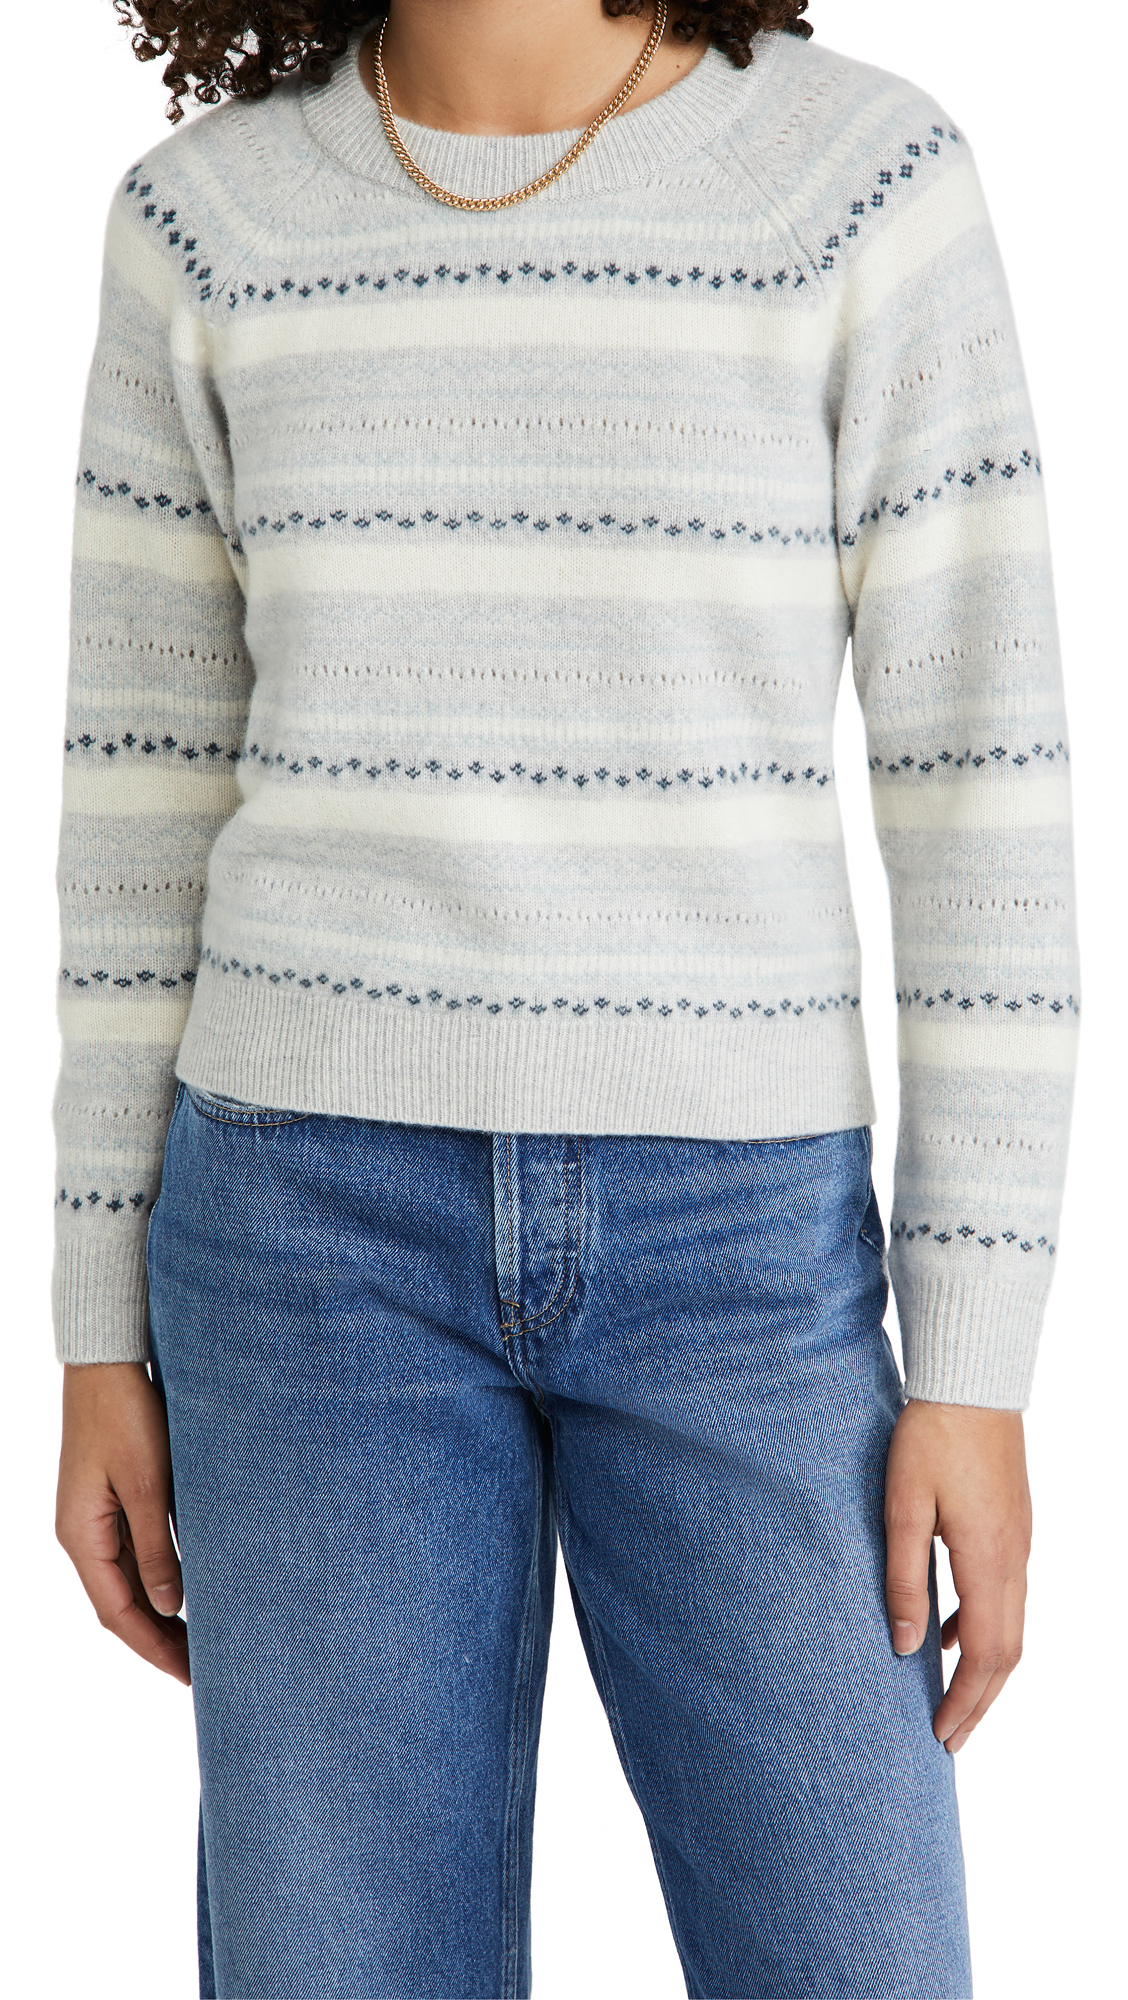 Club Monaco BOILED CASHMERE FAIR ISLE SWEATER